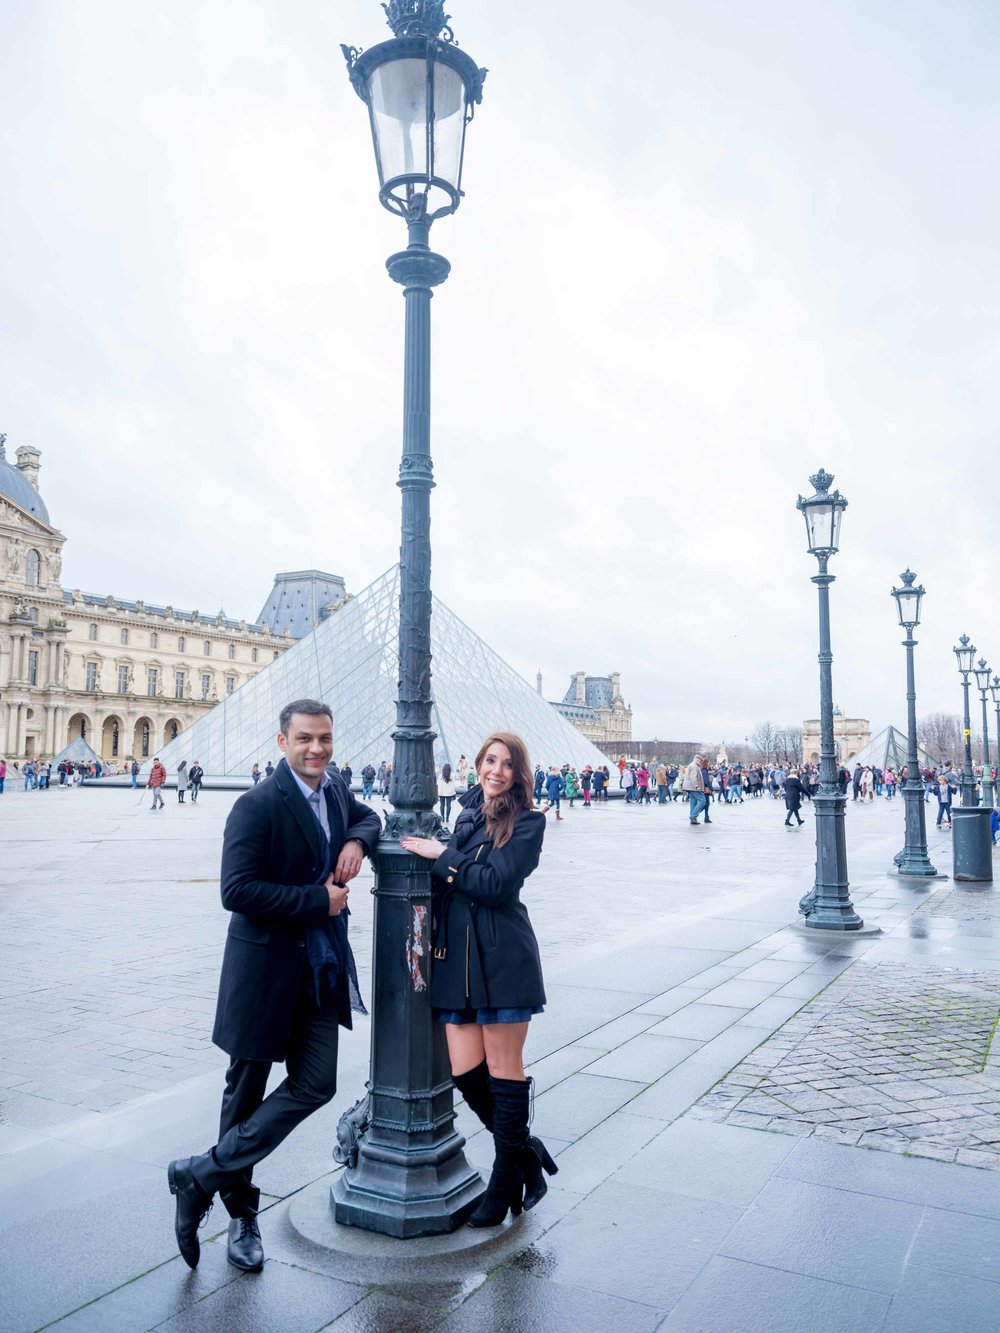 romantic engagement photo shoot in paris france at louvre museum